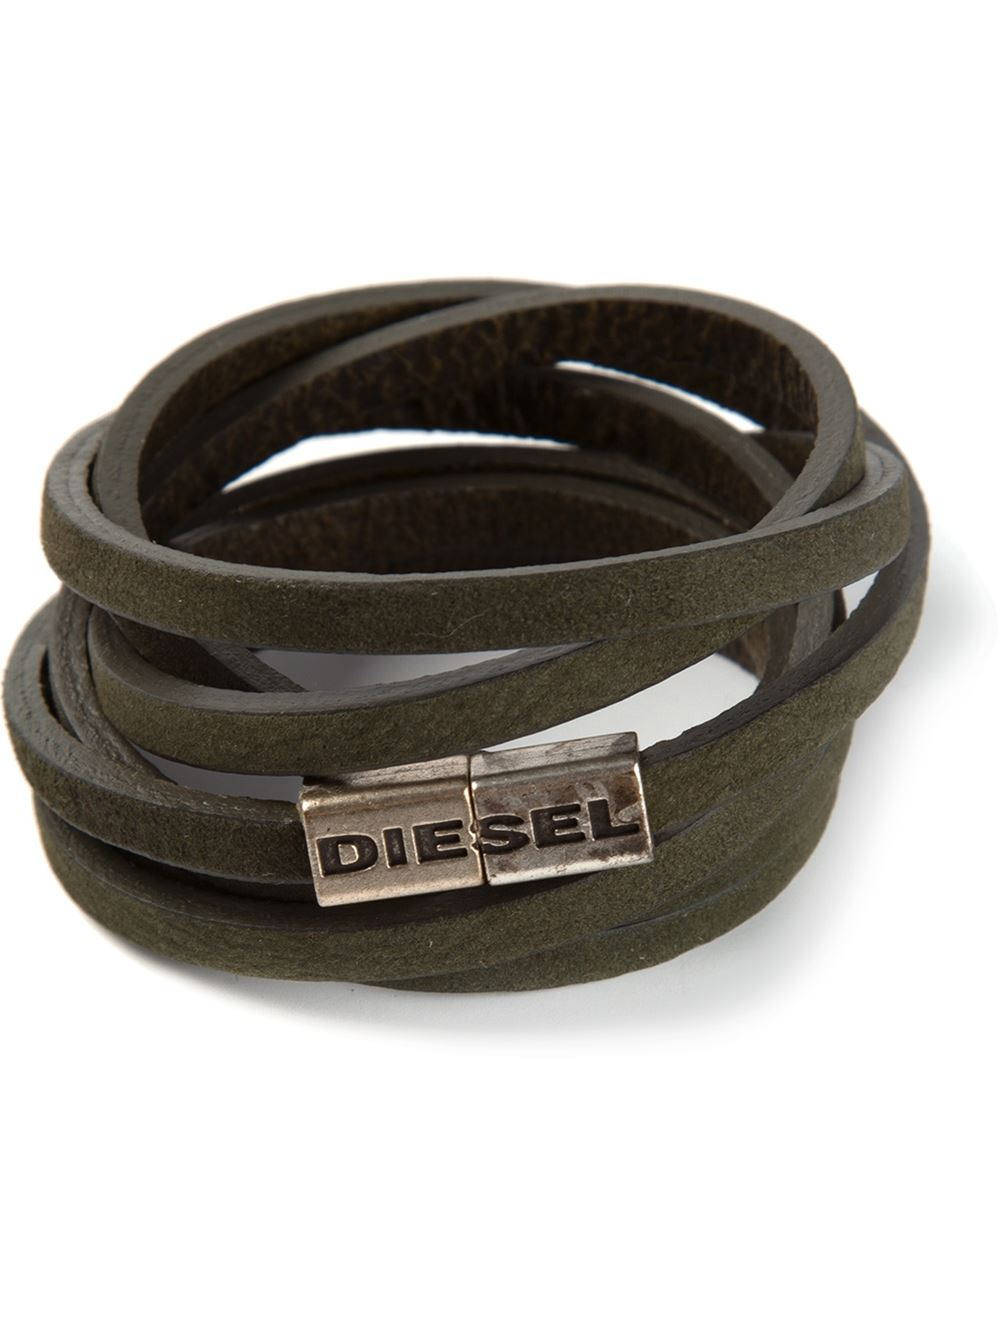 Diesel Acavi Bracelet In Green For Men Lyst